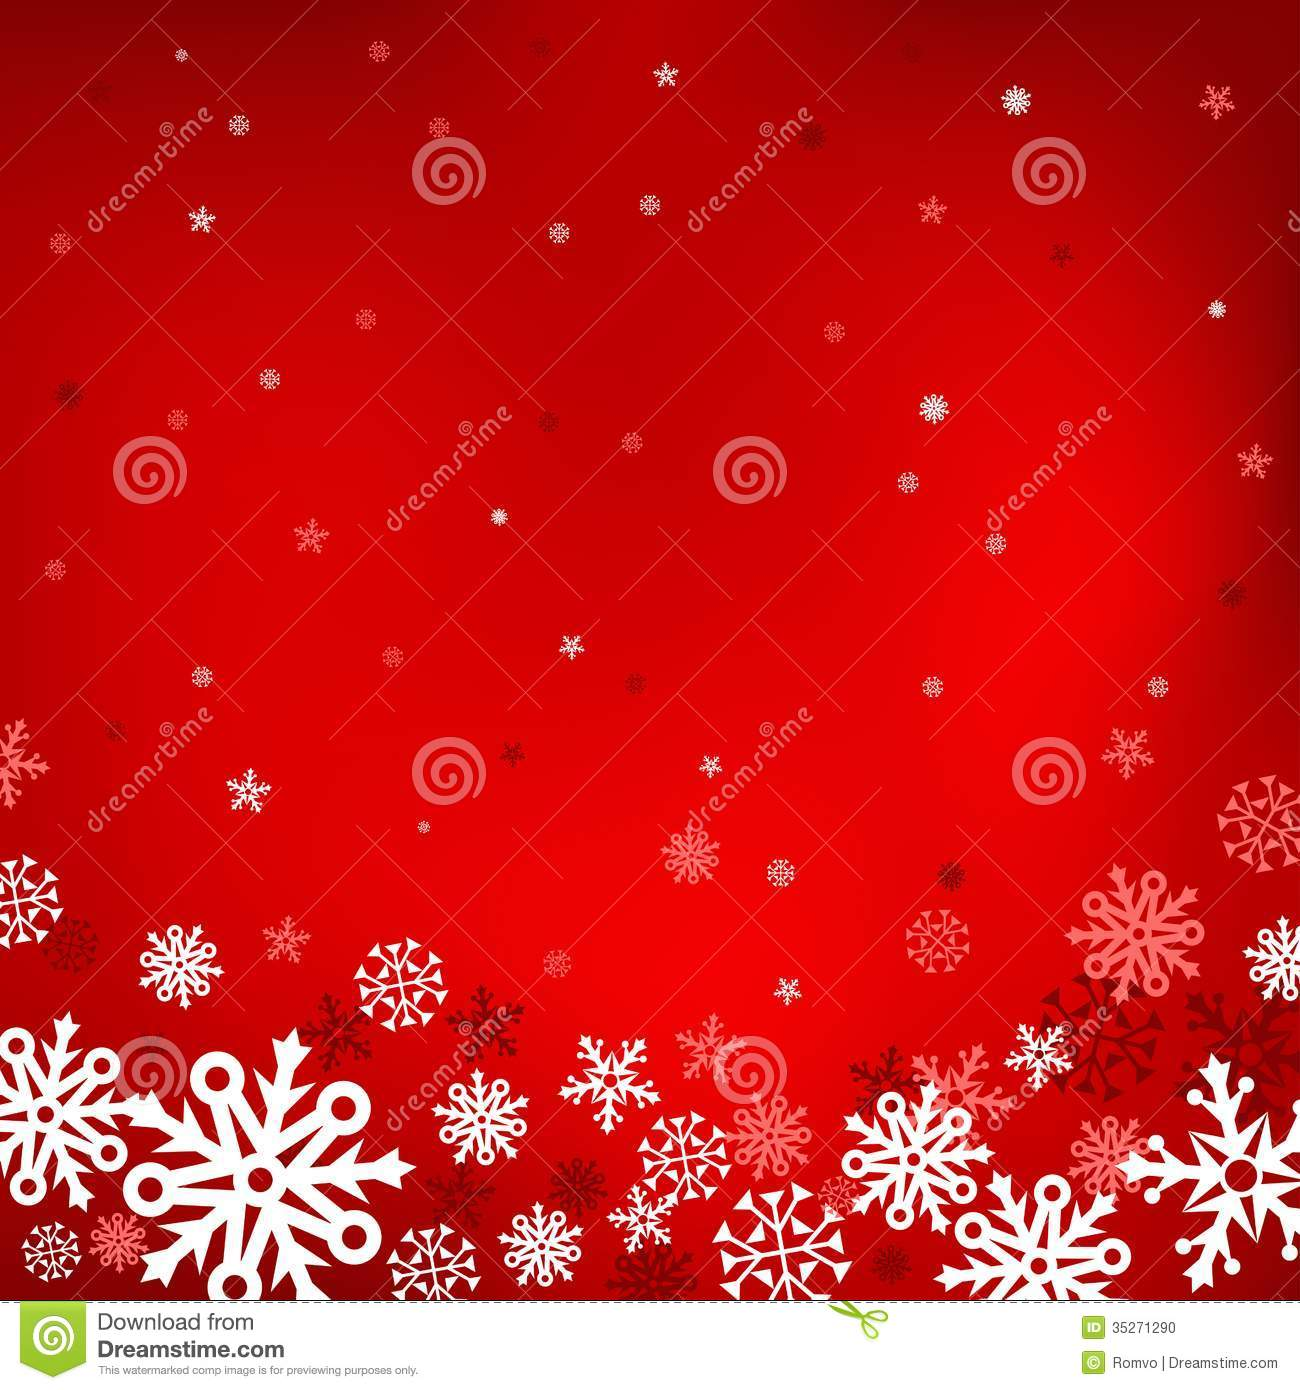 red snow christmas background - photo #19